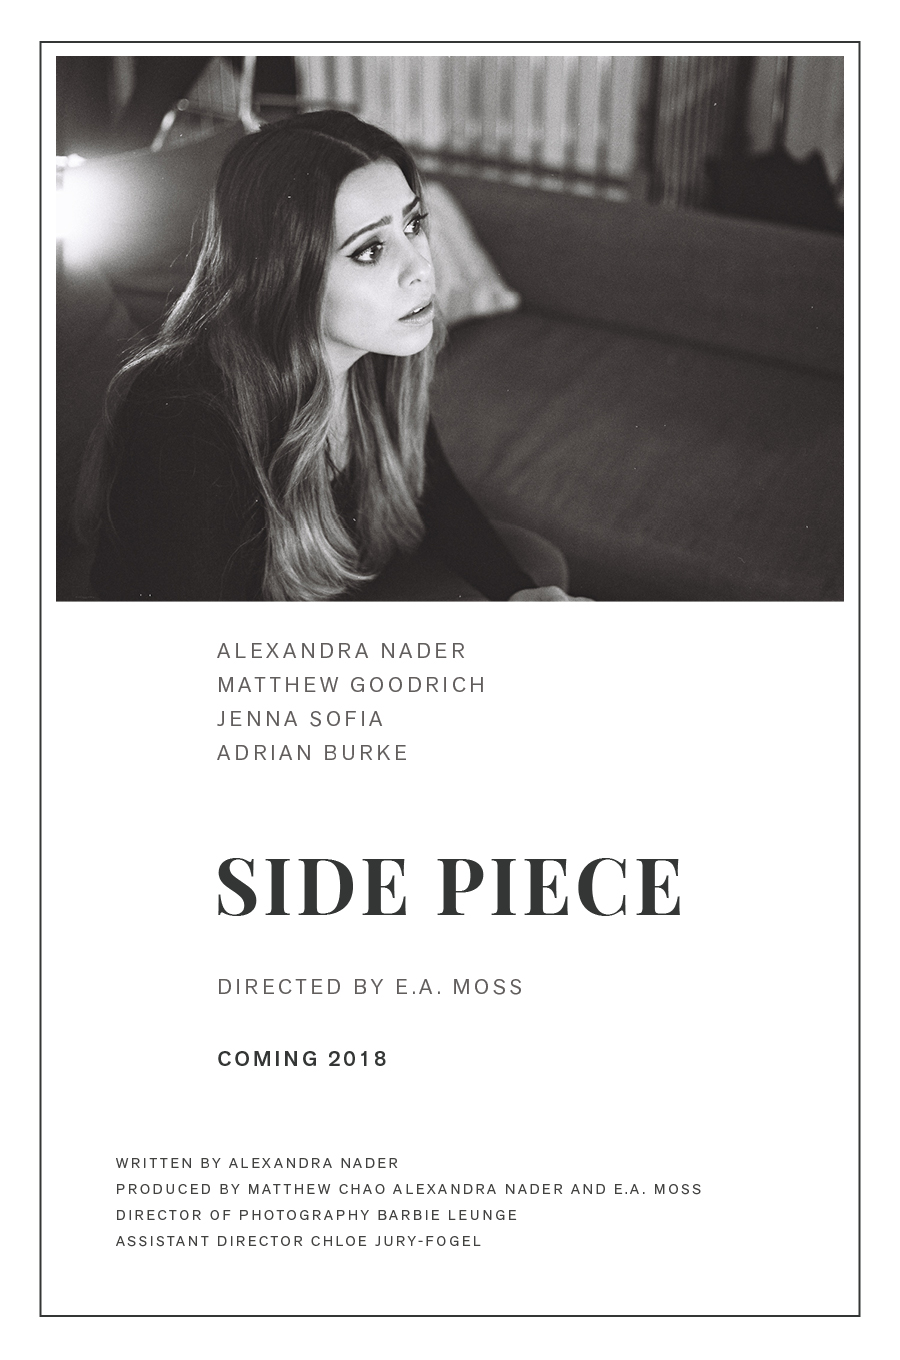 Coming in 2018 - Alexandra has written a feature film! To learn more please visit www.SidePieceFilm.com